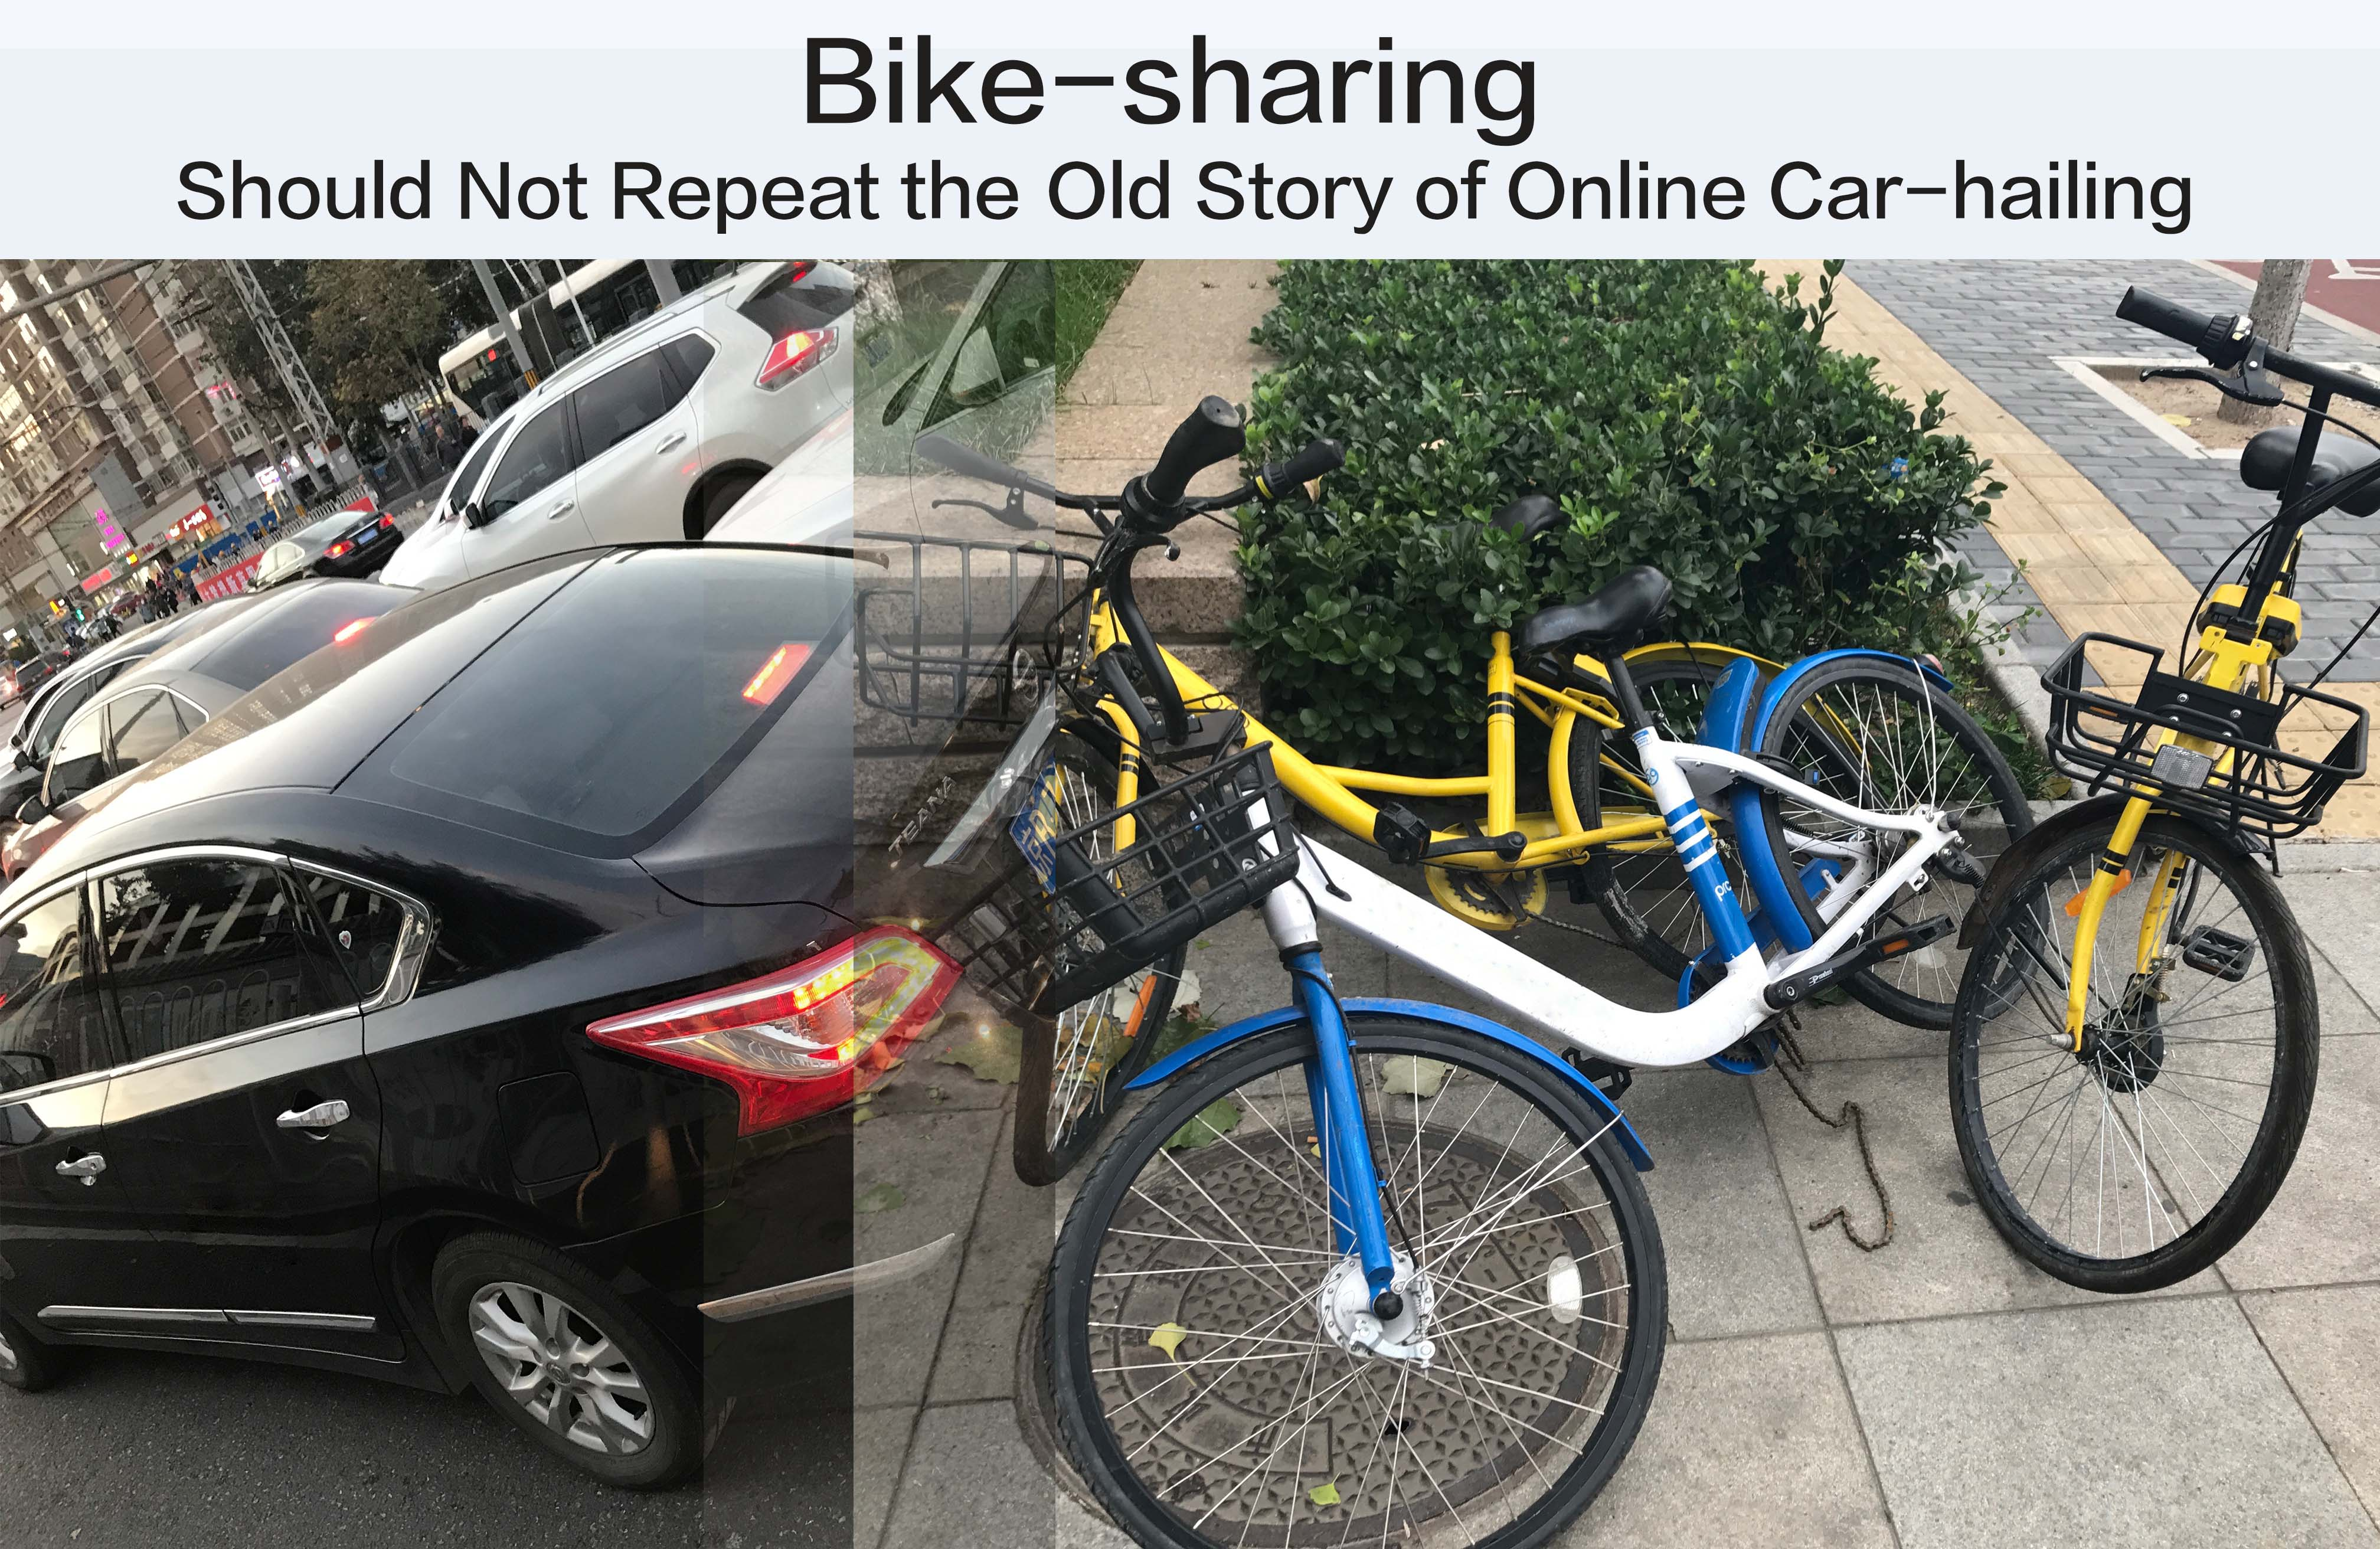 Bike-sharing Should Not Repeat the Old Story of Online Car-hailing